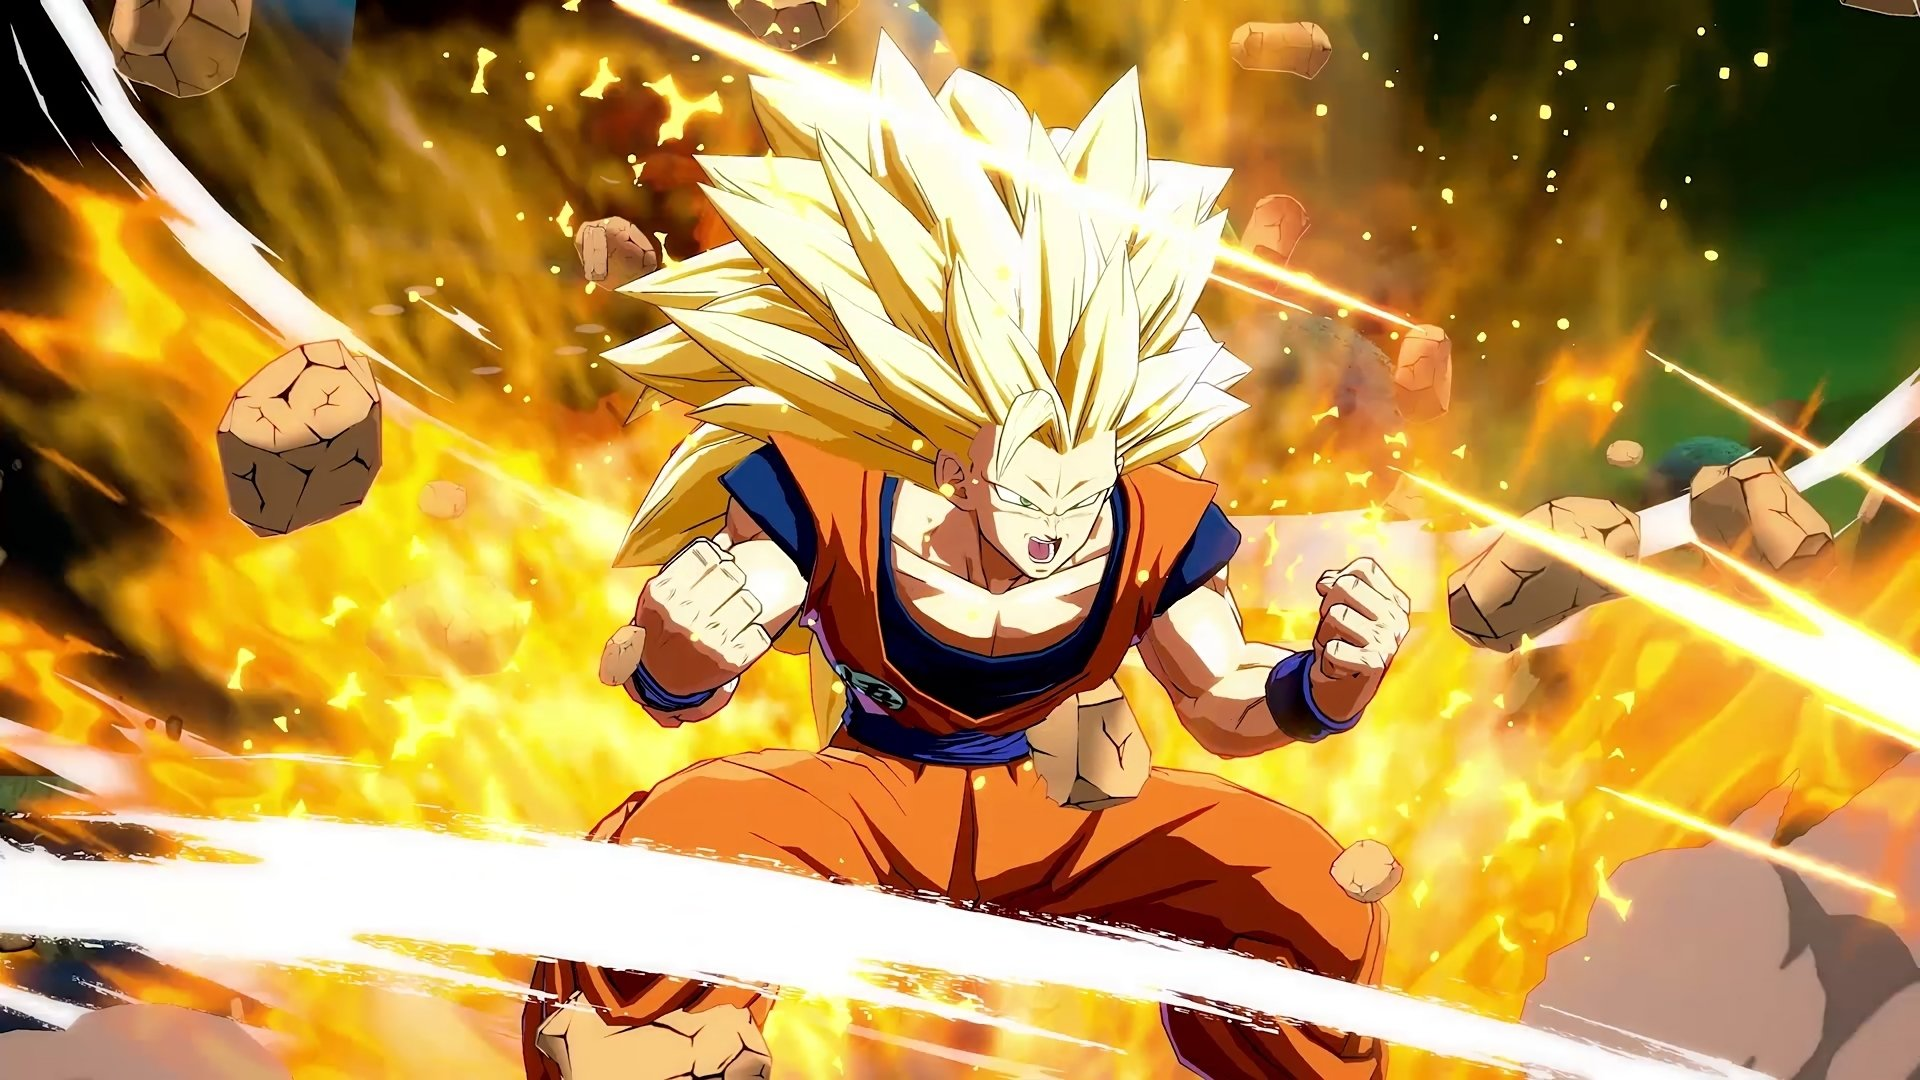 Fondos de pantalla de dragon ball fighterz wallpapers hd - Imagenes de dragon ball super descargar ...